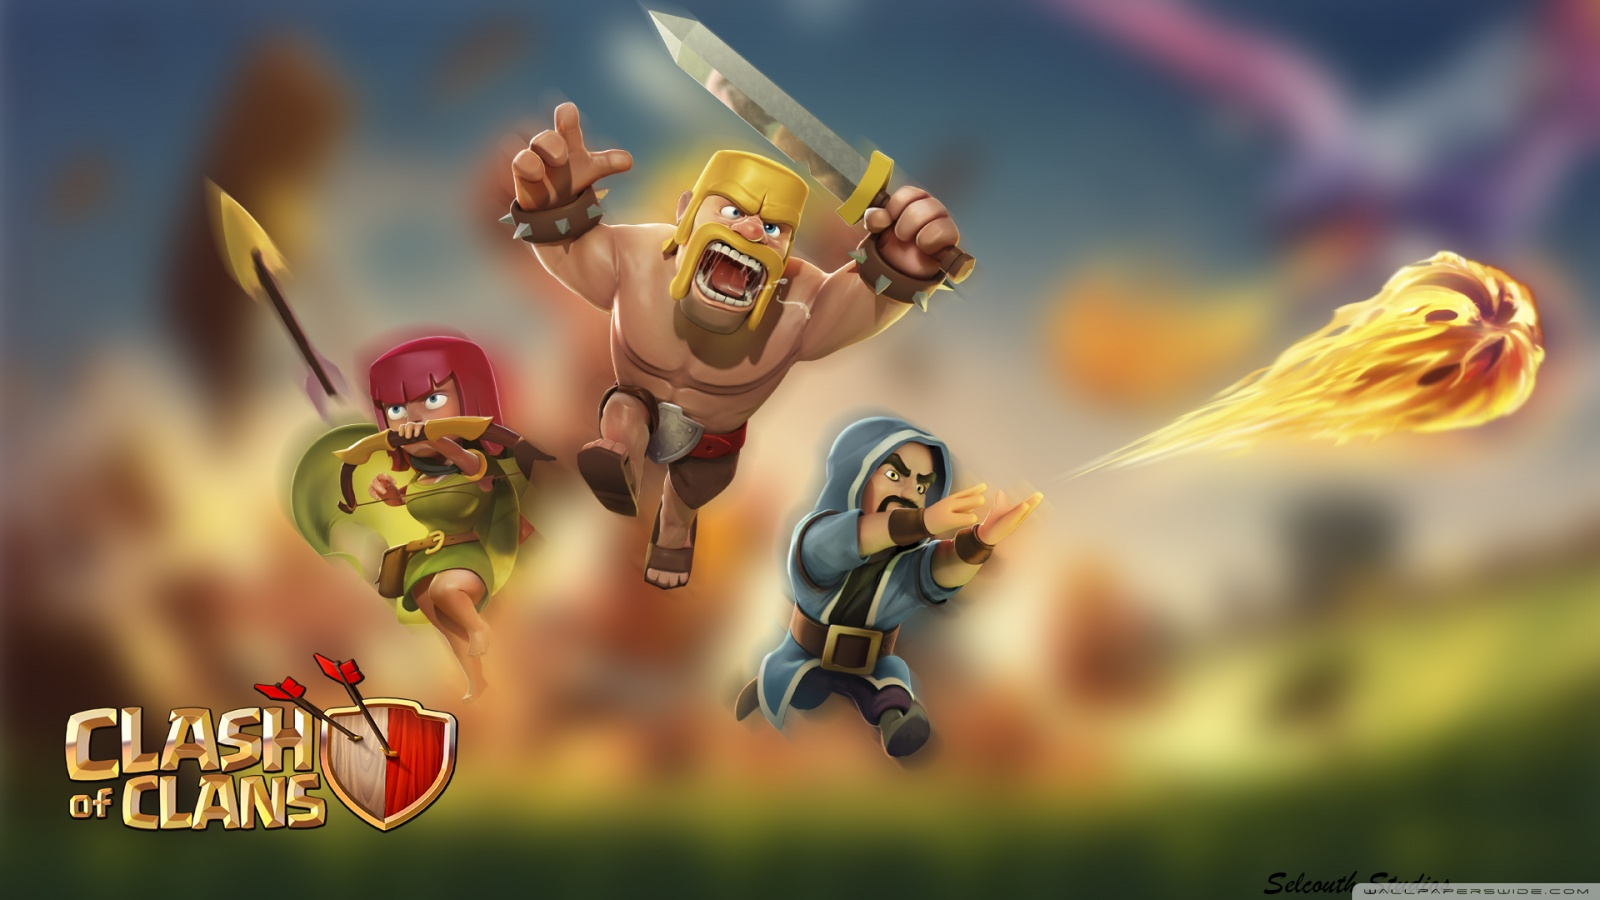 Clash of Clans phone wallpaper by roryfg29 1600x900